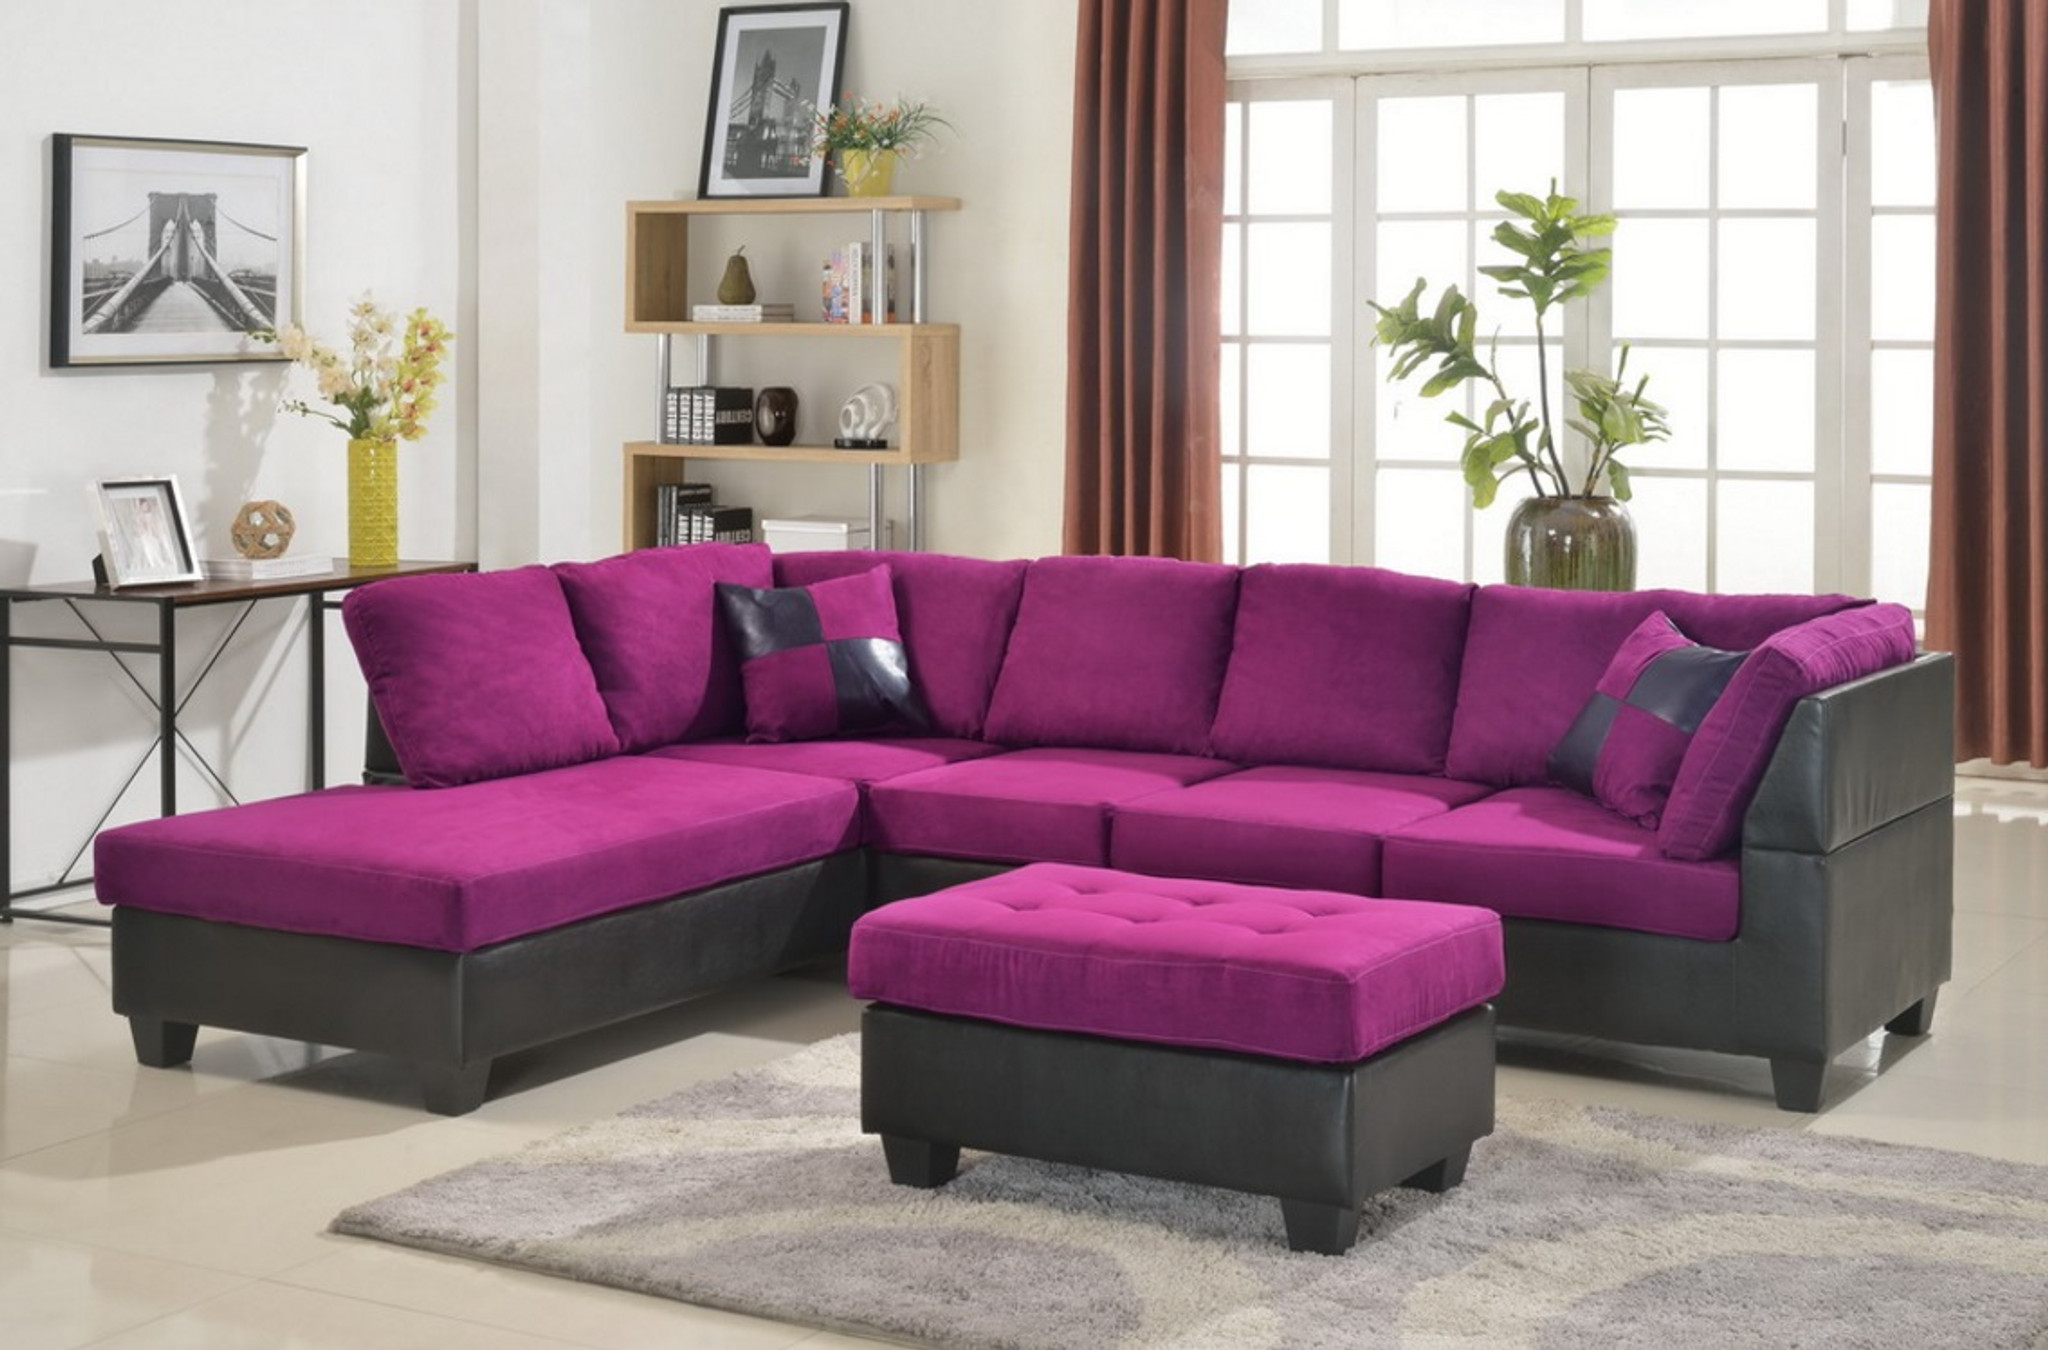 Magnificent Modern 2Pcs Sectional In Purple Microfiber And Leather Ibusinesslaw Wood Chair Design Ideas Ibusinesslaworg